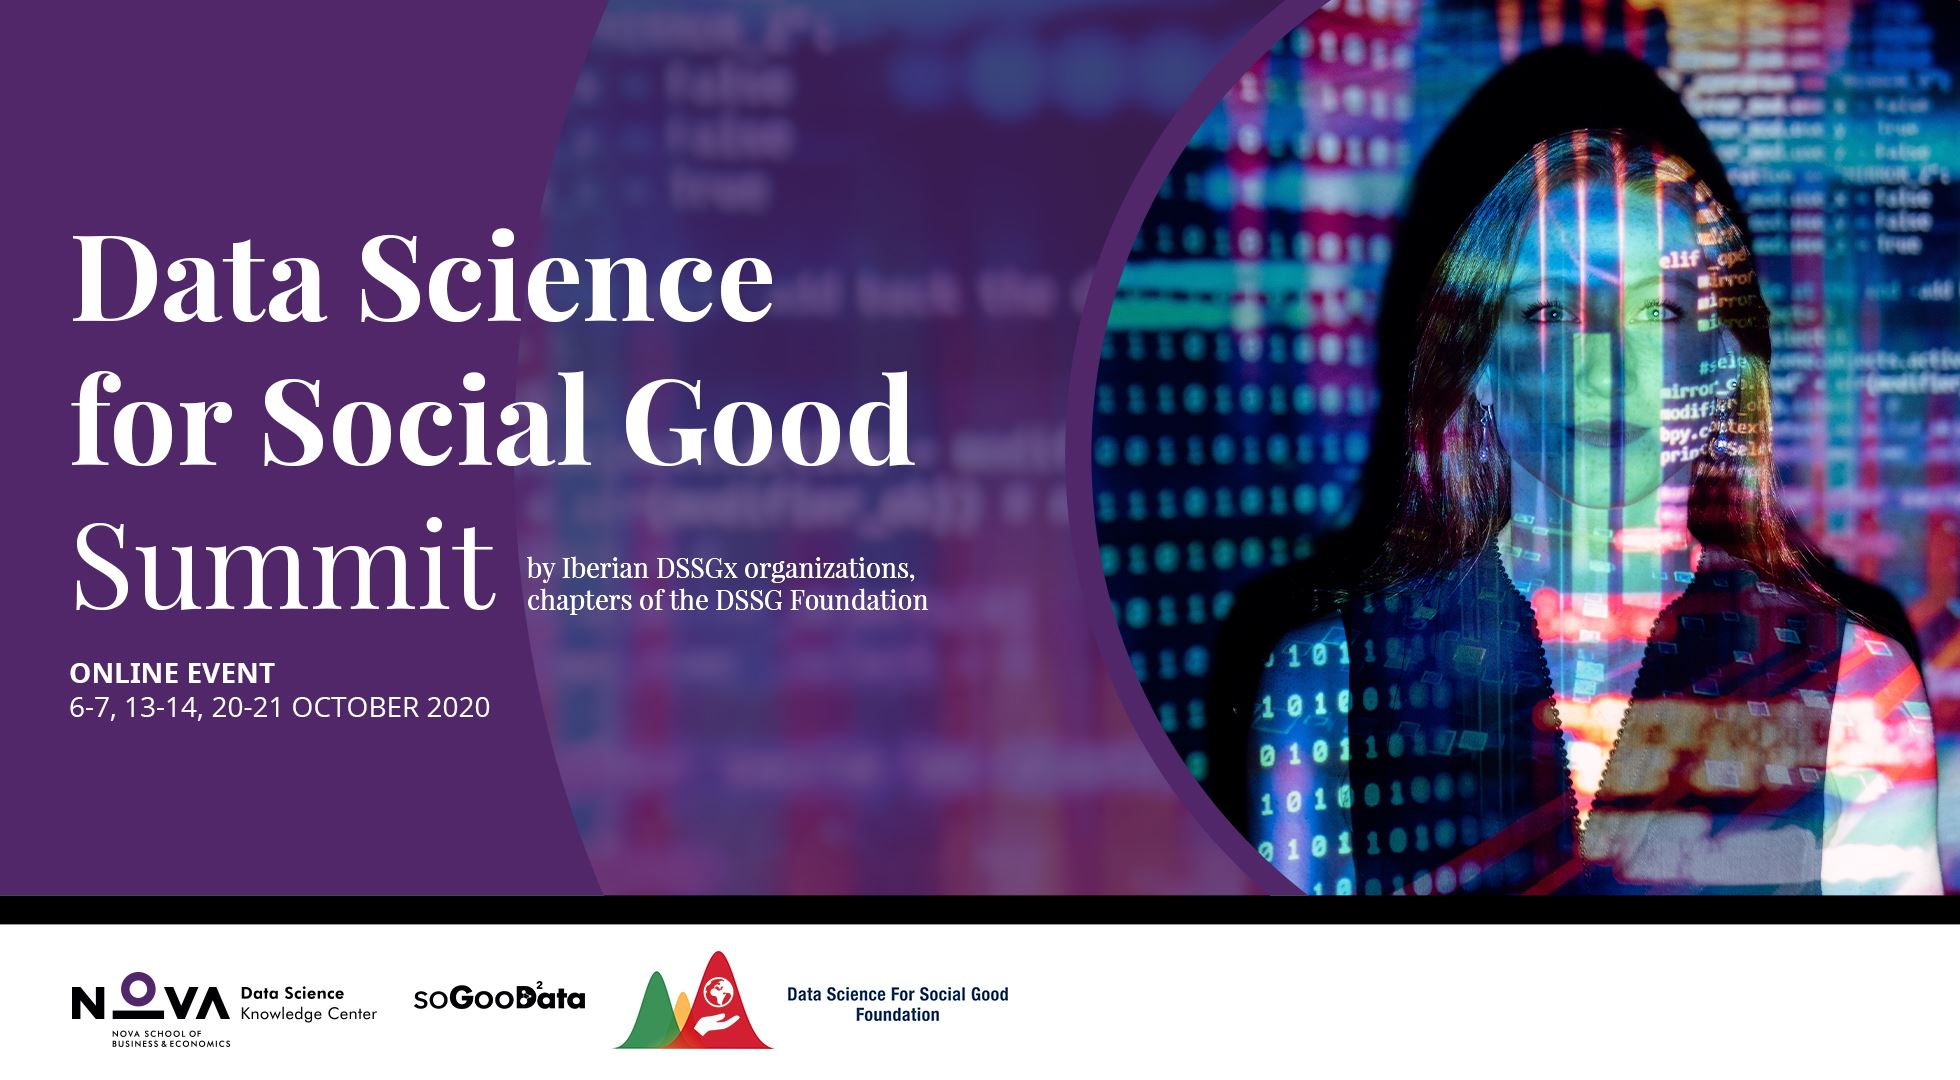 Data Science for Social Good Summit